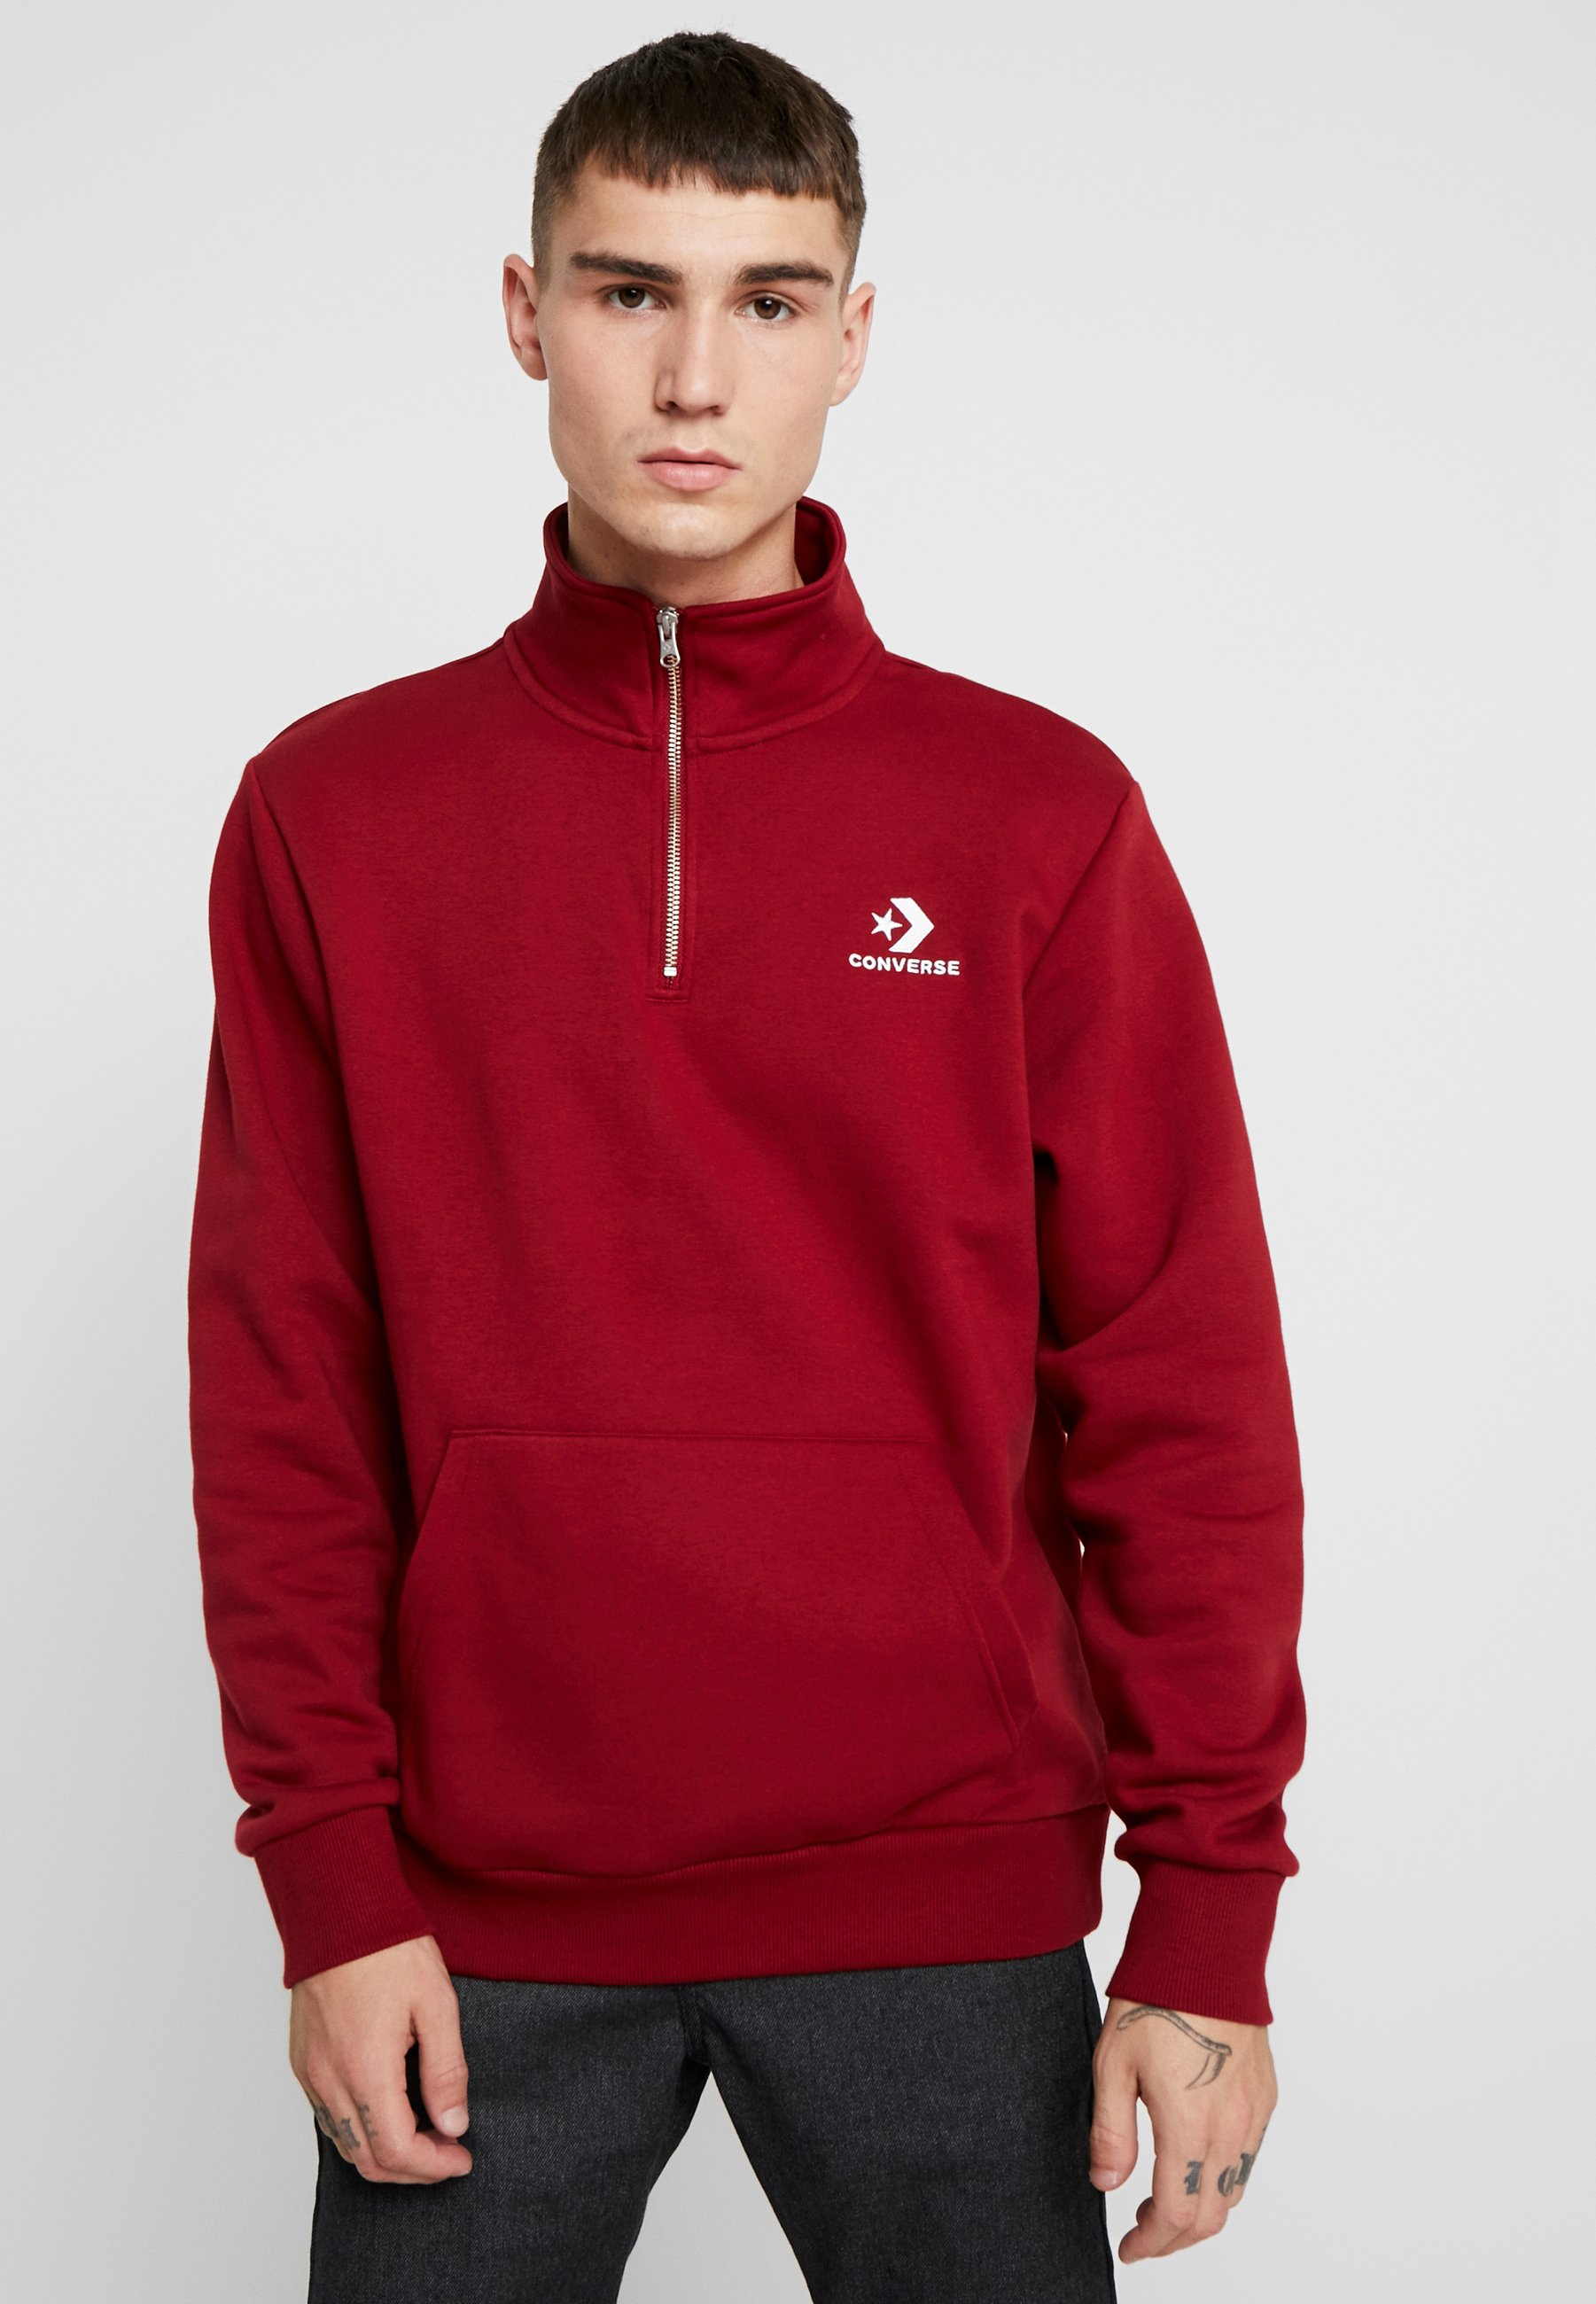 Converse STAR CHEVRON HALF ZIP - Sweatshirt back alley brick